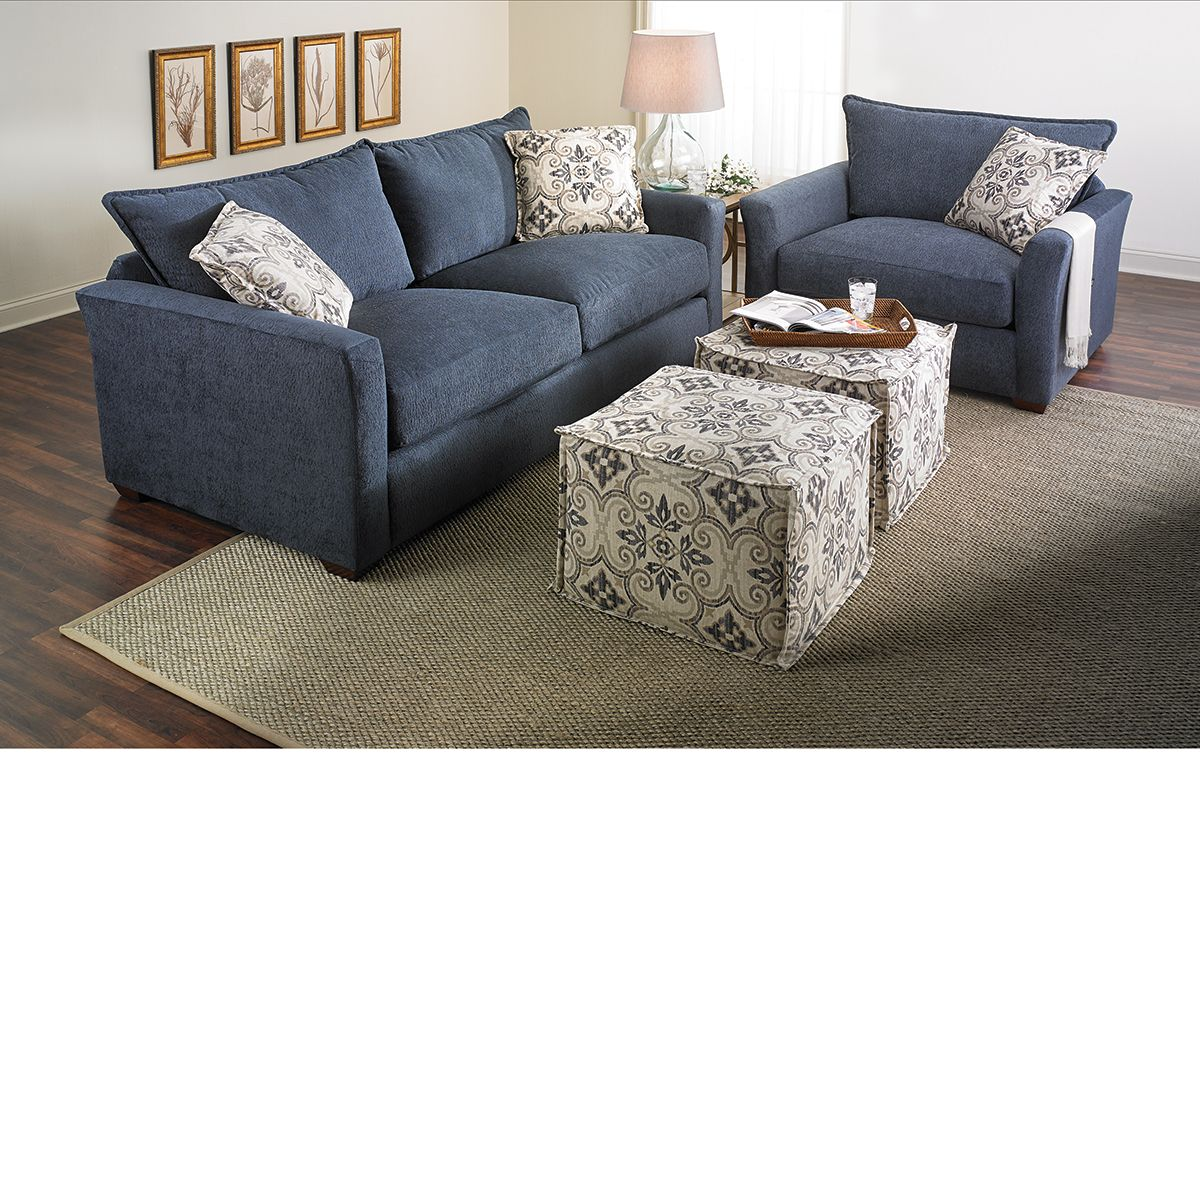 Pin On New Products #the #dump #living #room #sets